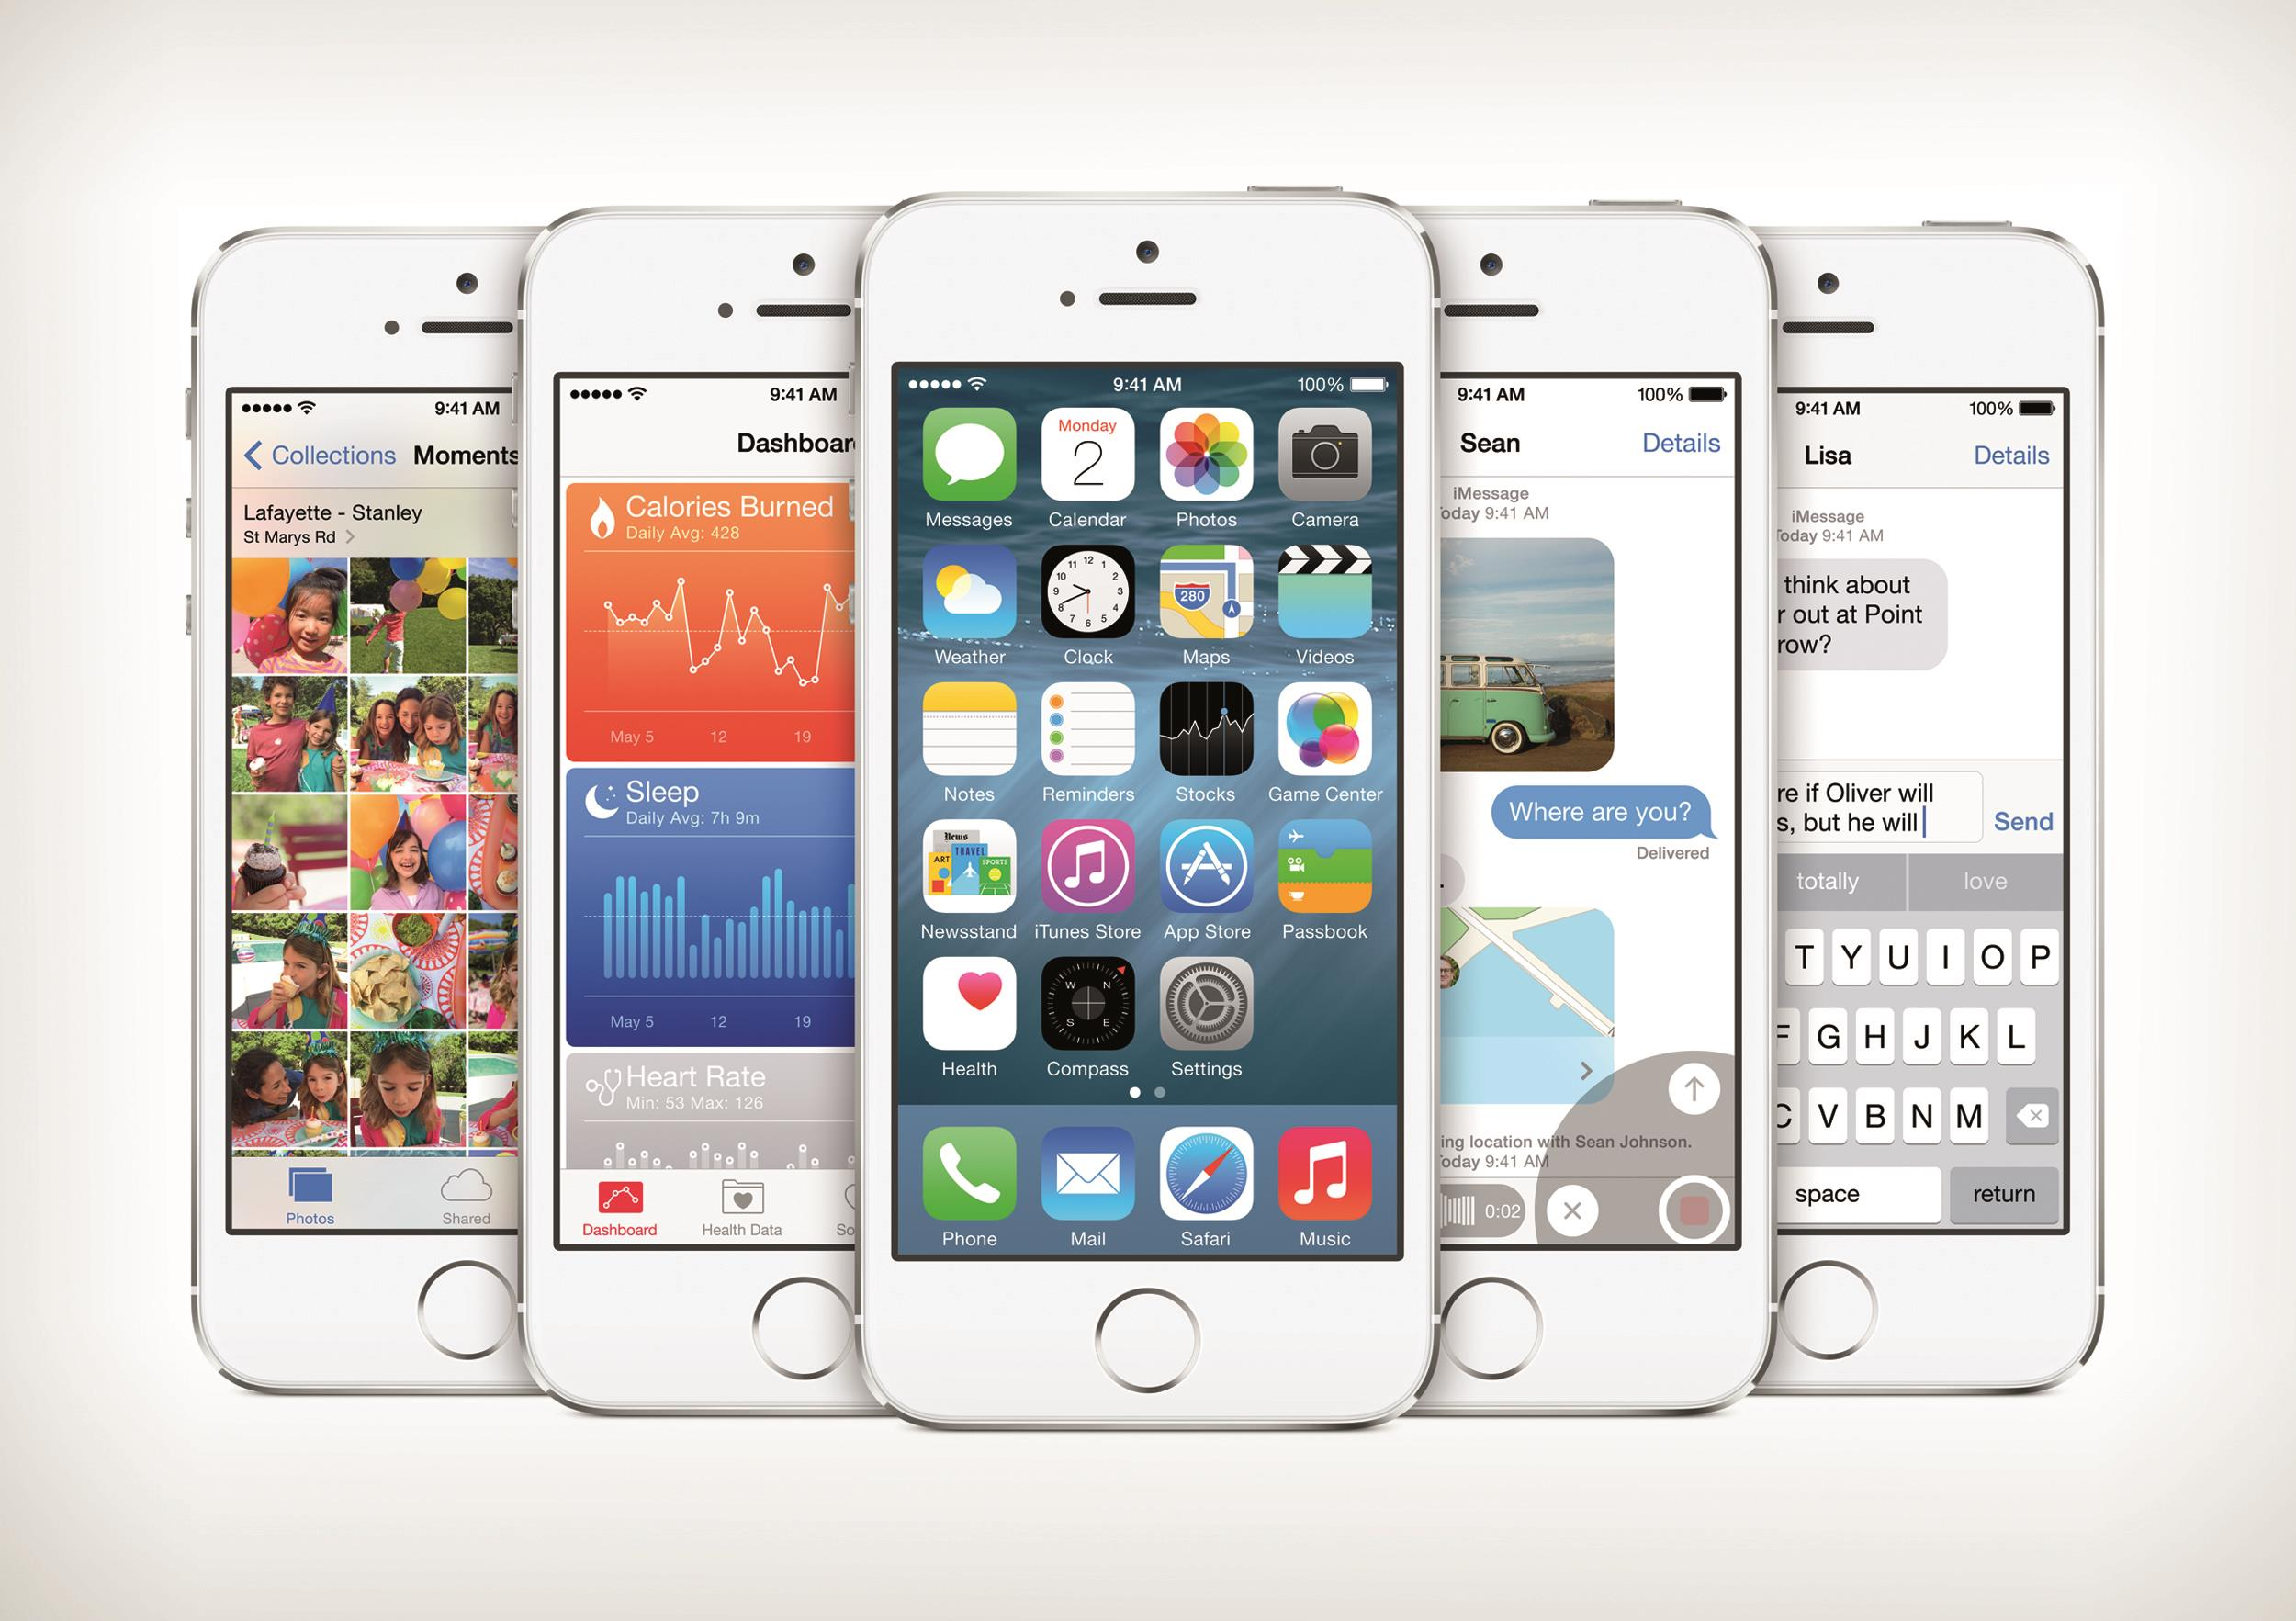 Apple's iOS 8